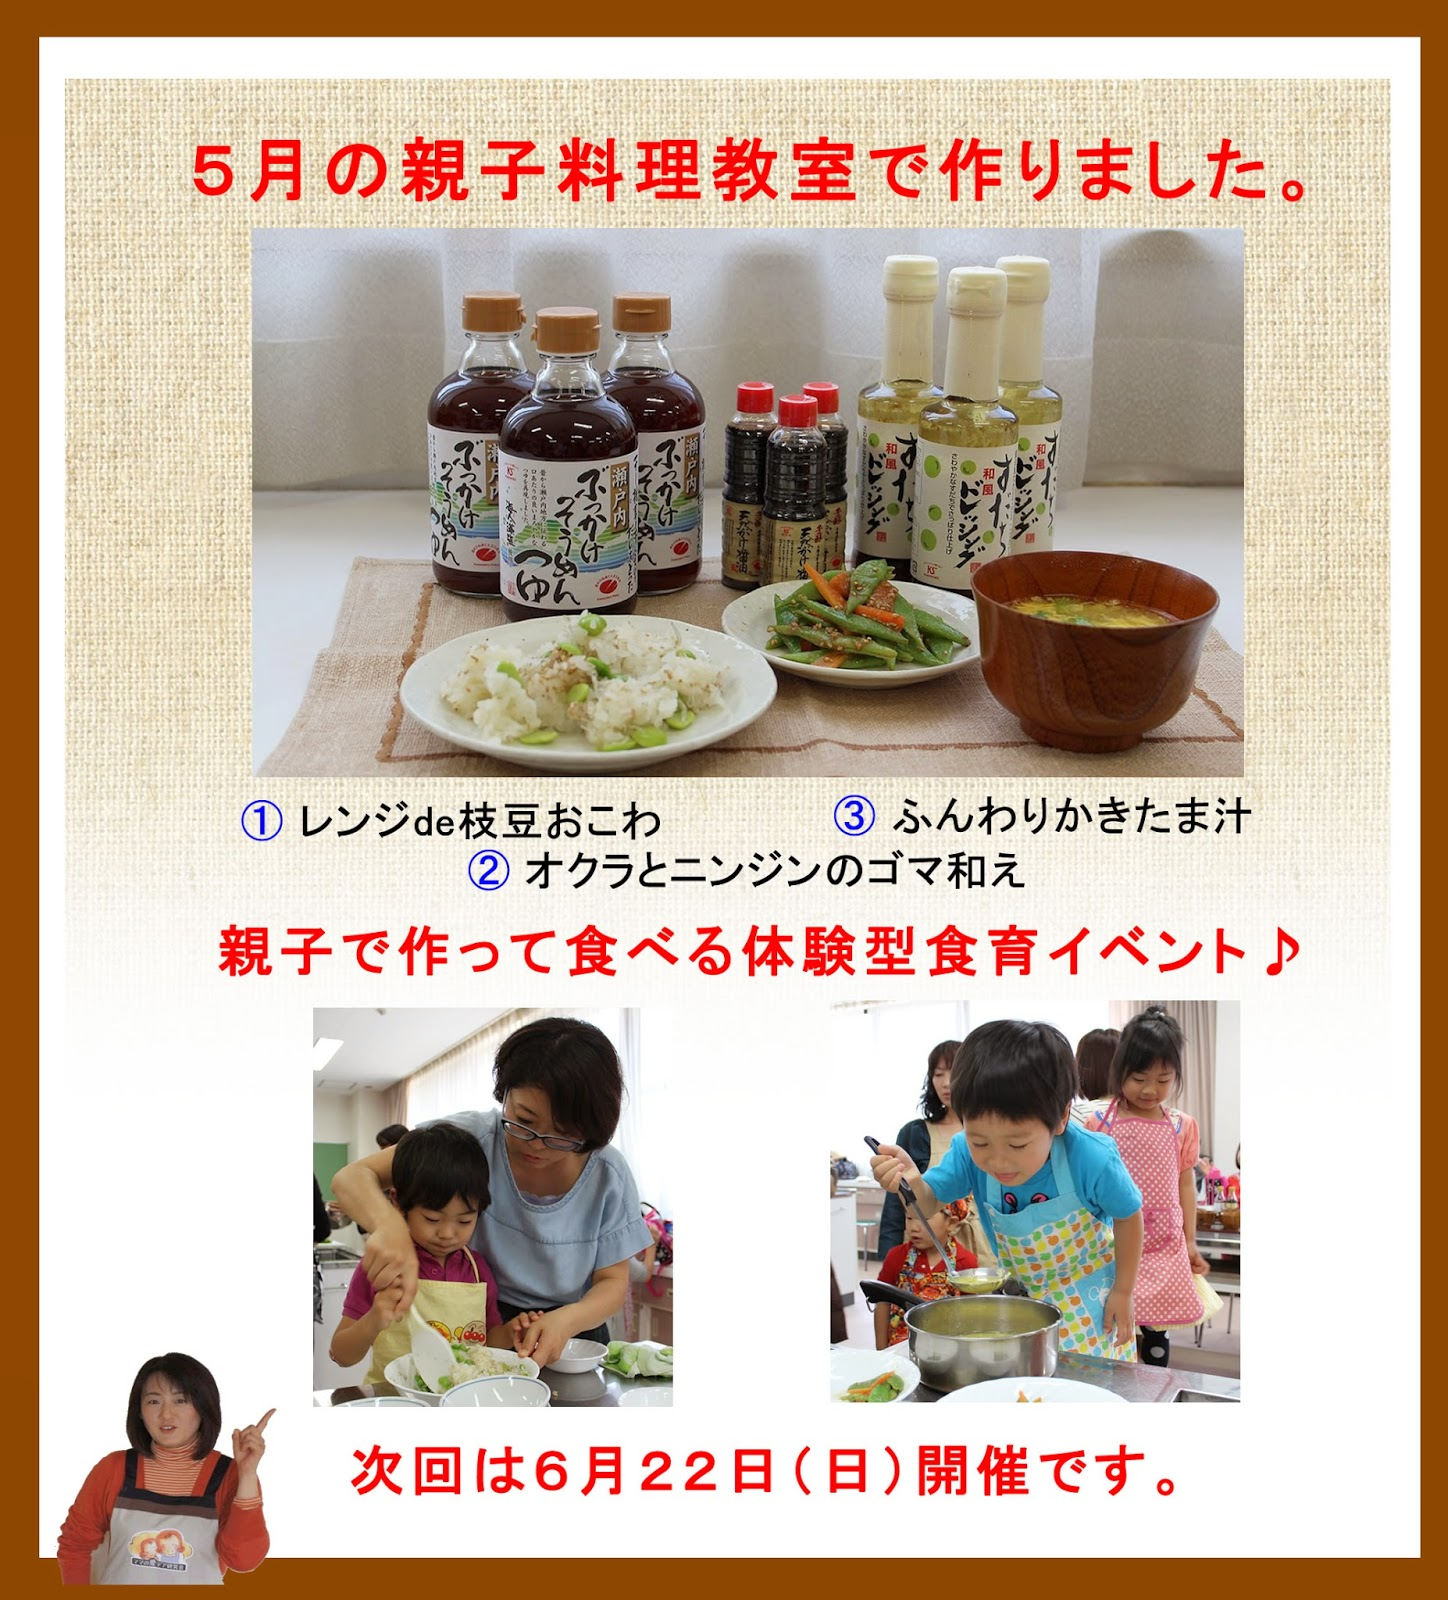 http://oyako-cooking.blogspot.jp/2014/06/blog-post.html